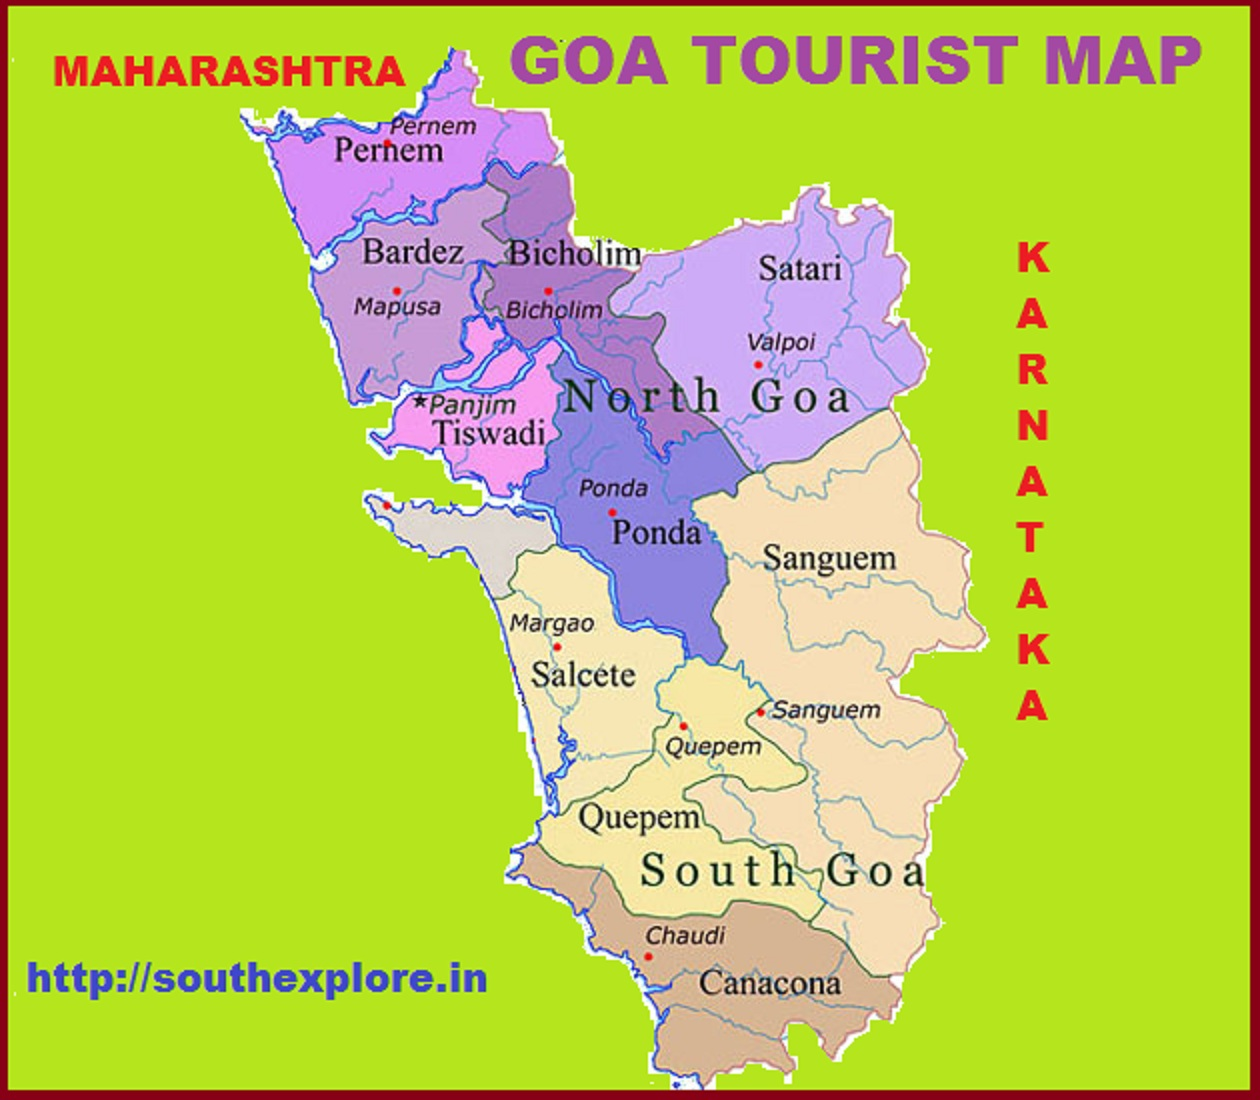 GOA TOURISM MAP TOURIST ATTRACTIONS IN GOA – South India Map With Tourist Places